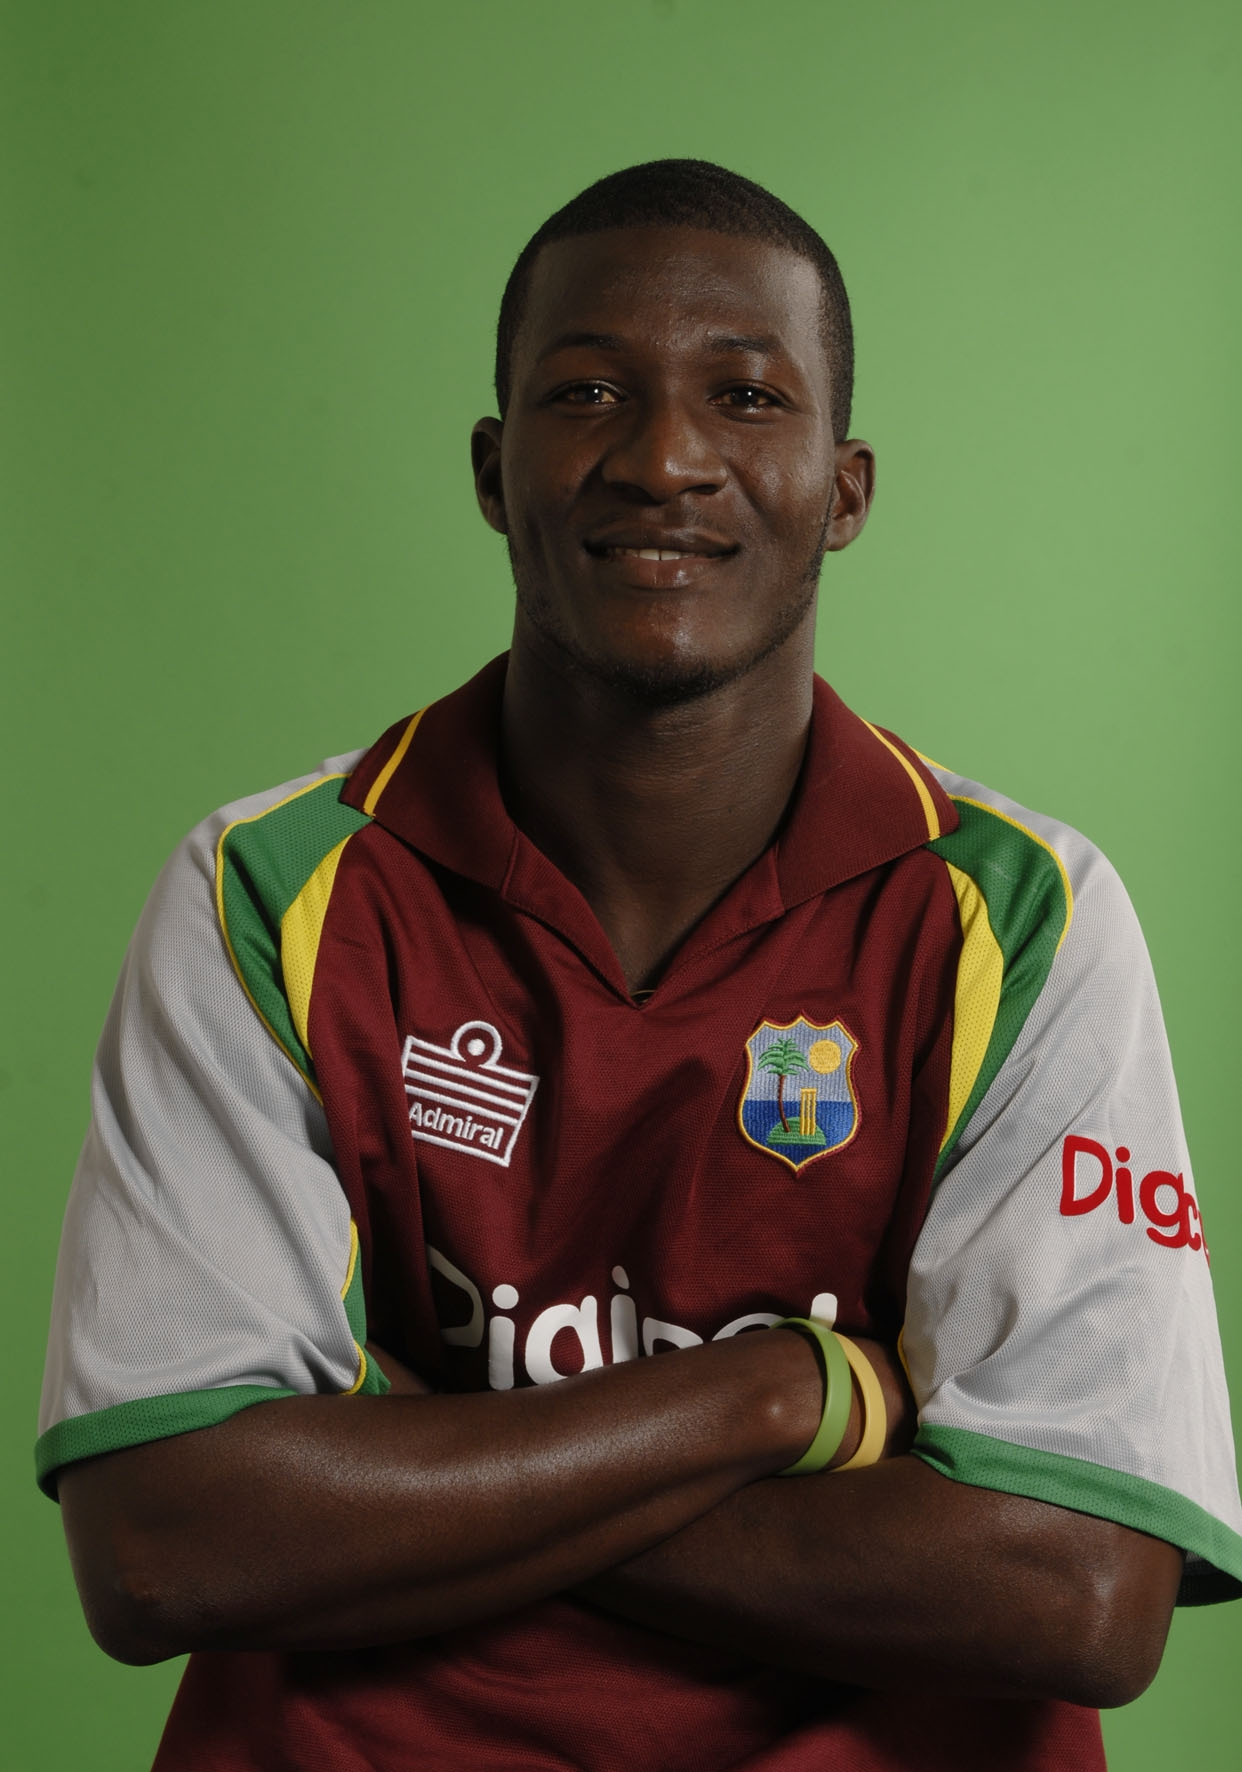 Want to know more about Darren Sammy? Check out his stats ...